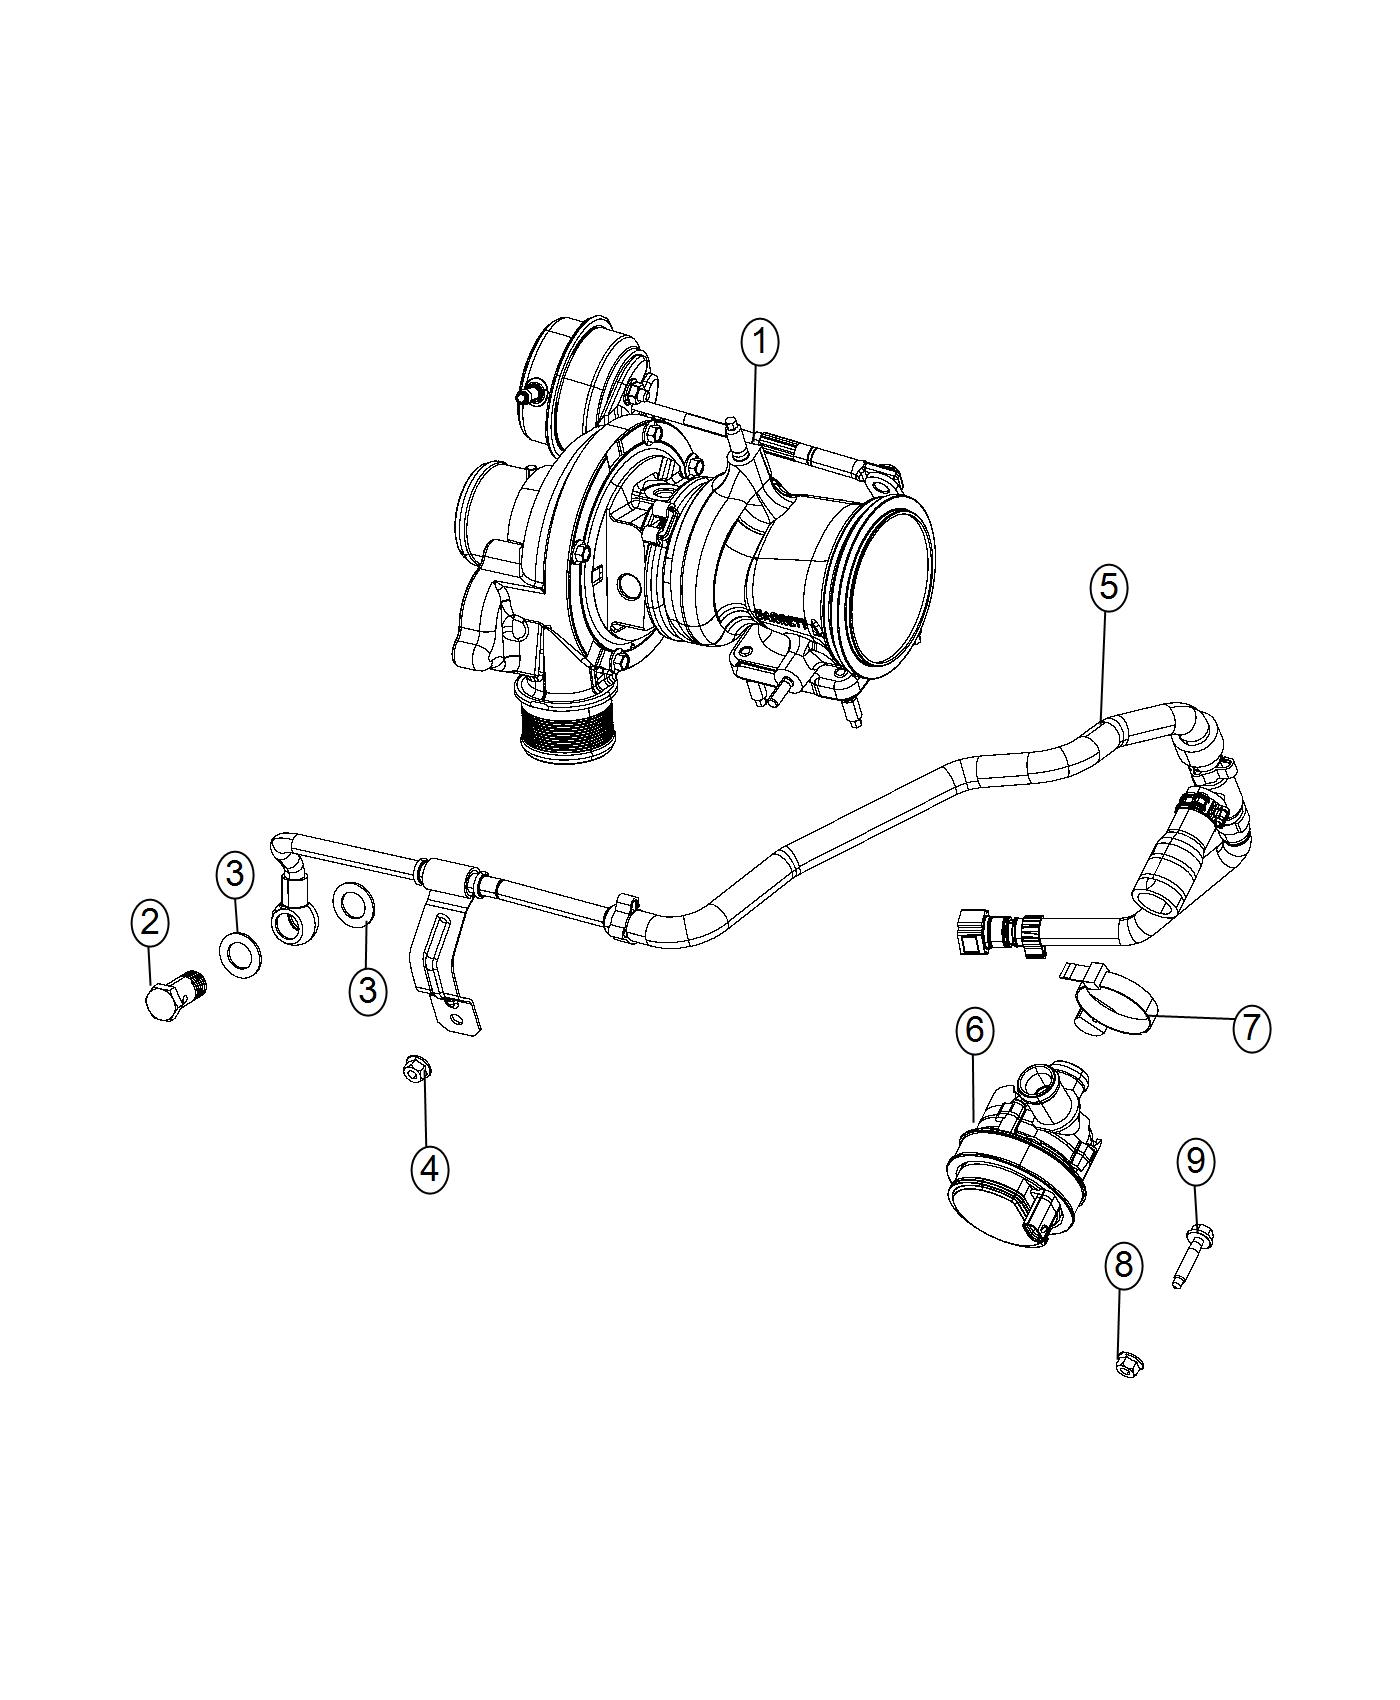 i2346829 Radiator Fan Wiring Diagram For Jeep Renegade on